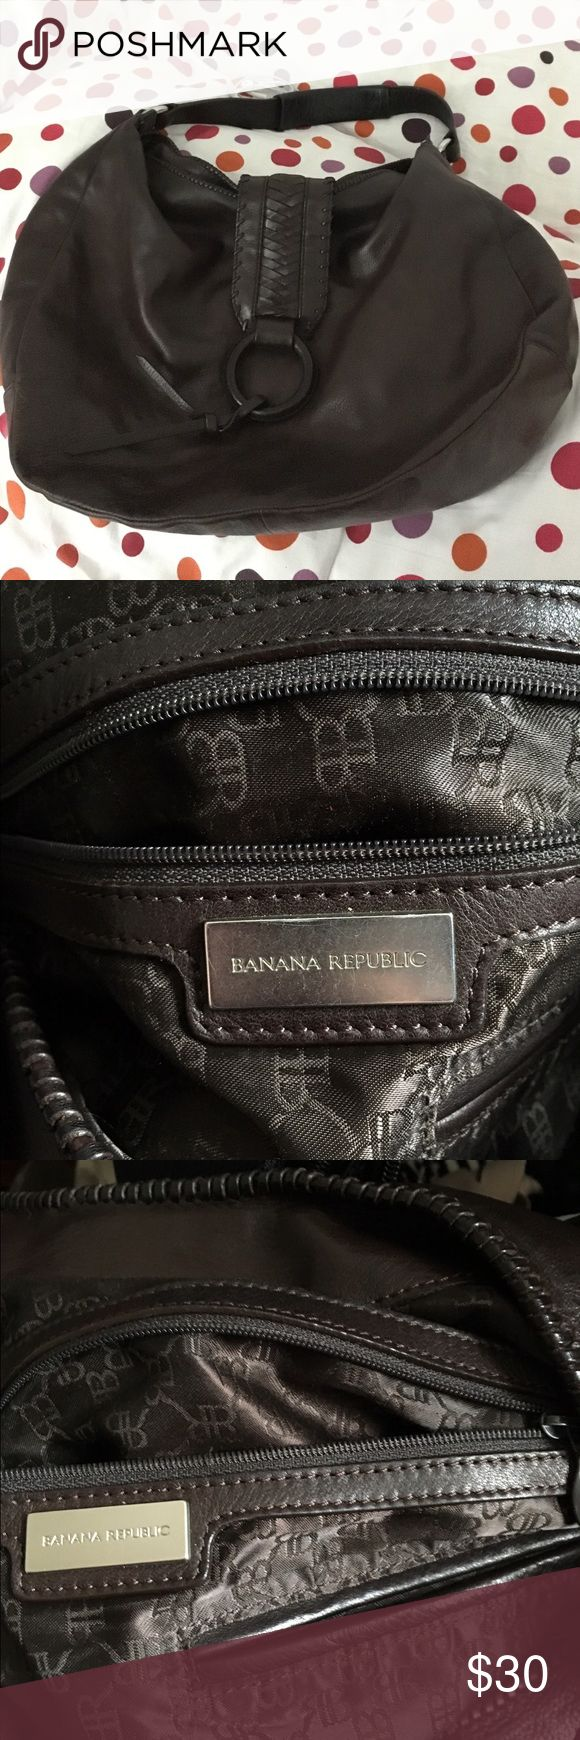 Banana Republic Saddle Bag/Hobo Better and stronger than a regular tote bag, this Dark Brown leather Banana Republic Hobo bag will carry everything! Featuring a zip pocket and cell phone pocket with a cloth liner embroidered with Banana Republic's initials. The leather exterior and strap are pristine, no scuffs or visible stains. Very good condition, and built to last! Banana Republic Bags Satchels